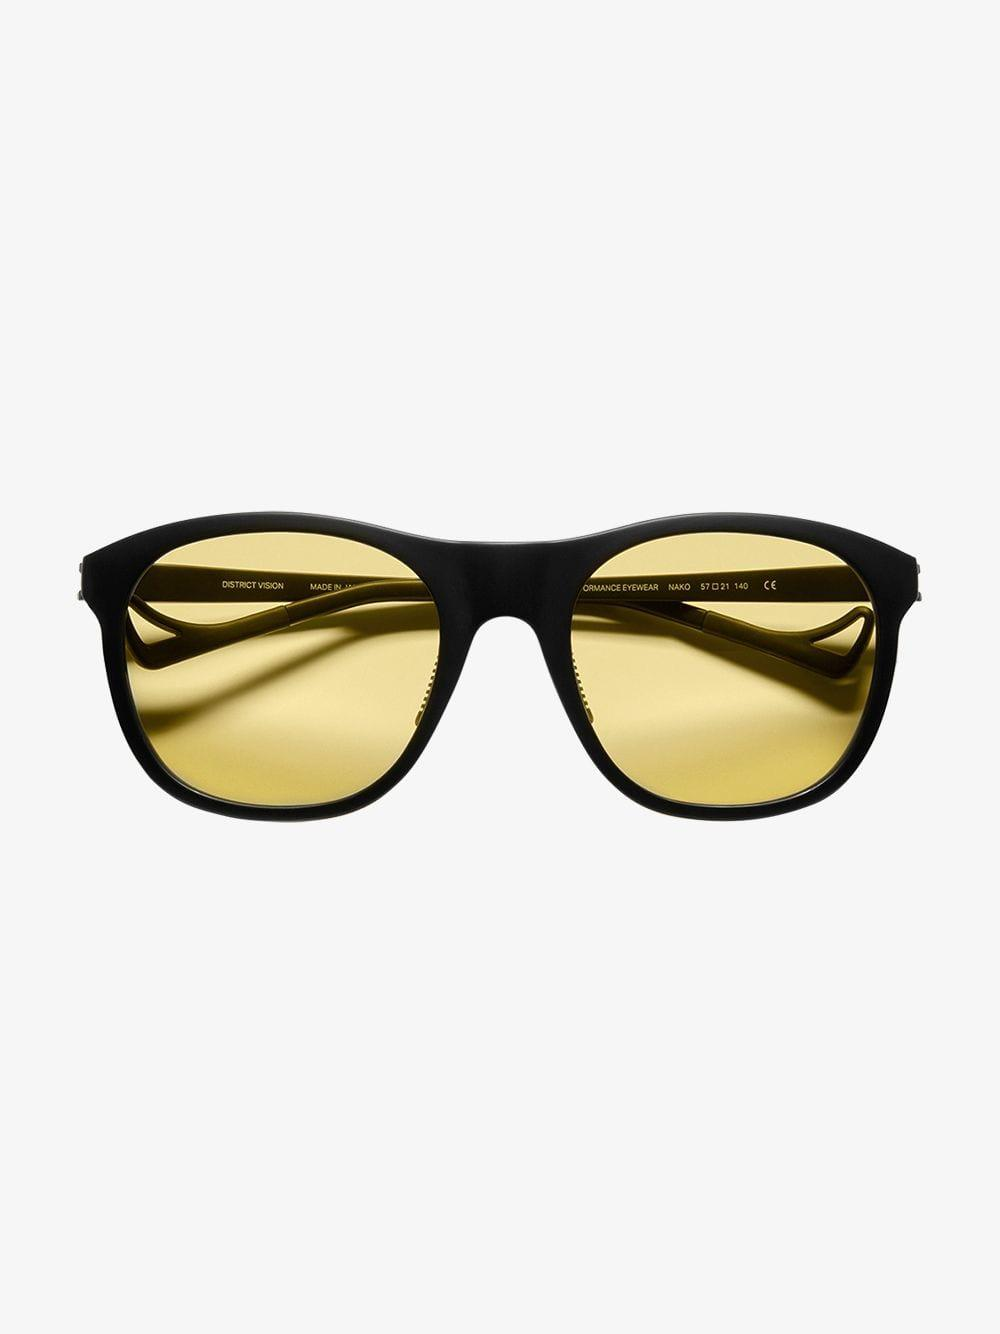 5f80fd9c9ca Lyst - District Vision Nako District Sports Yellow in Black for Men